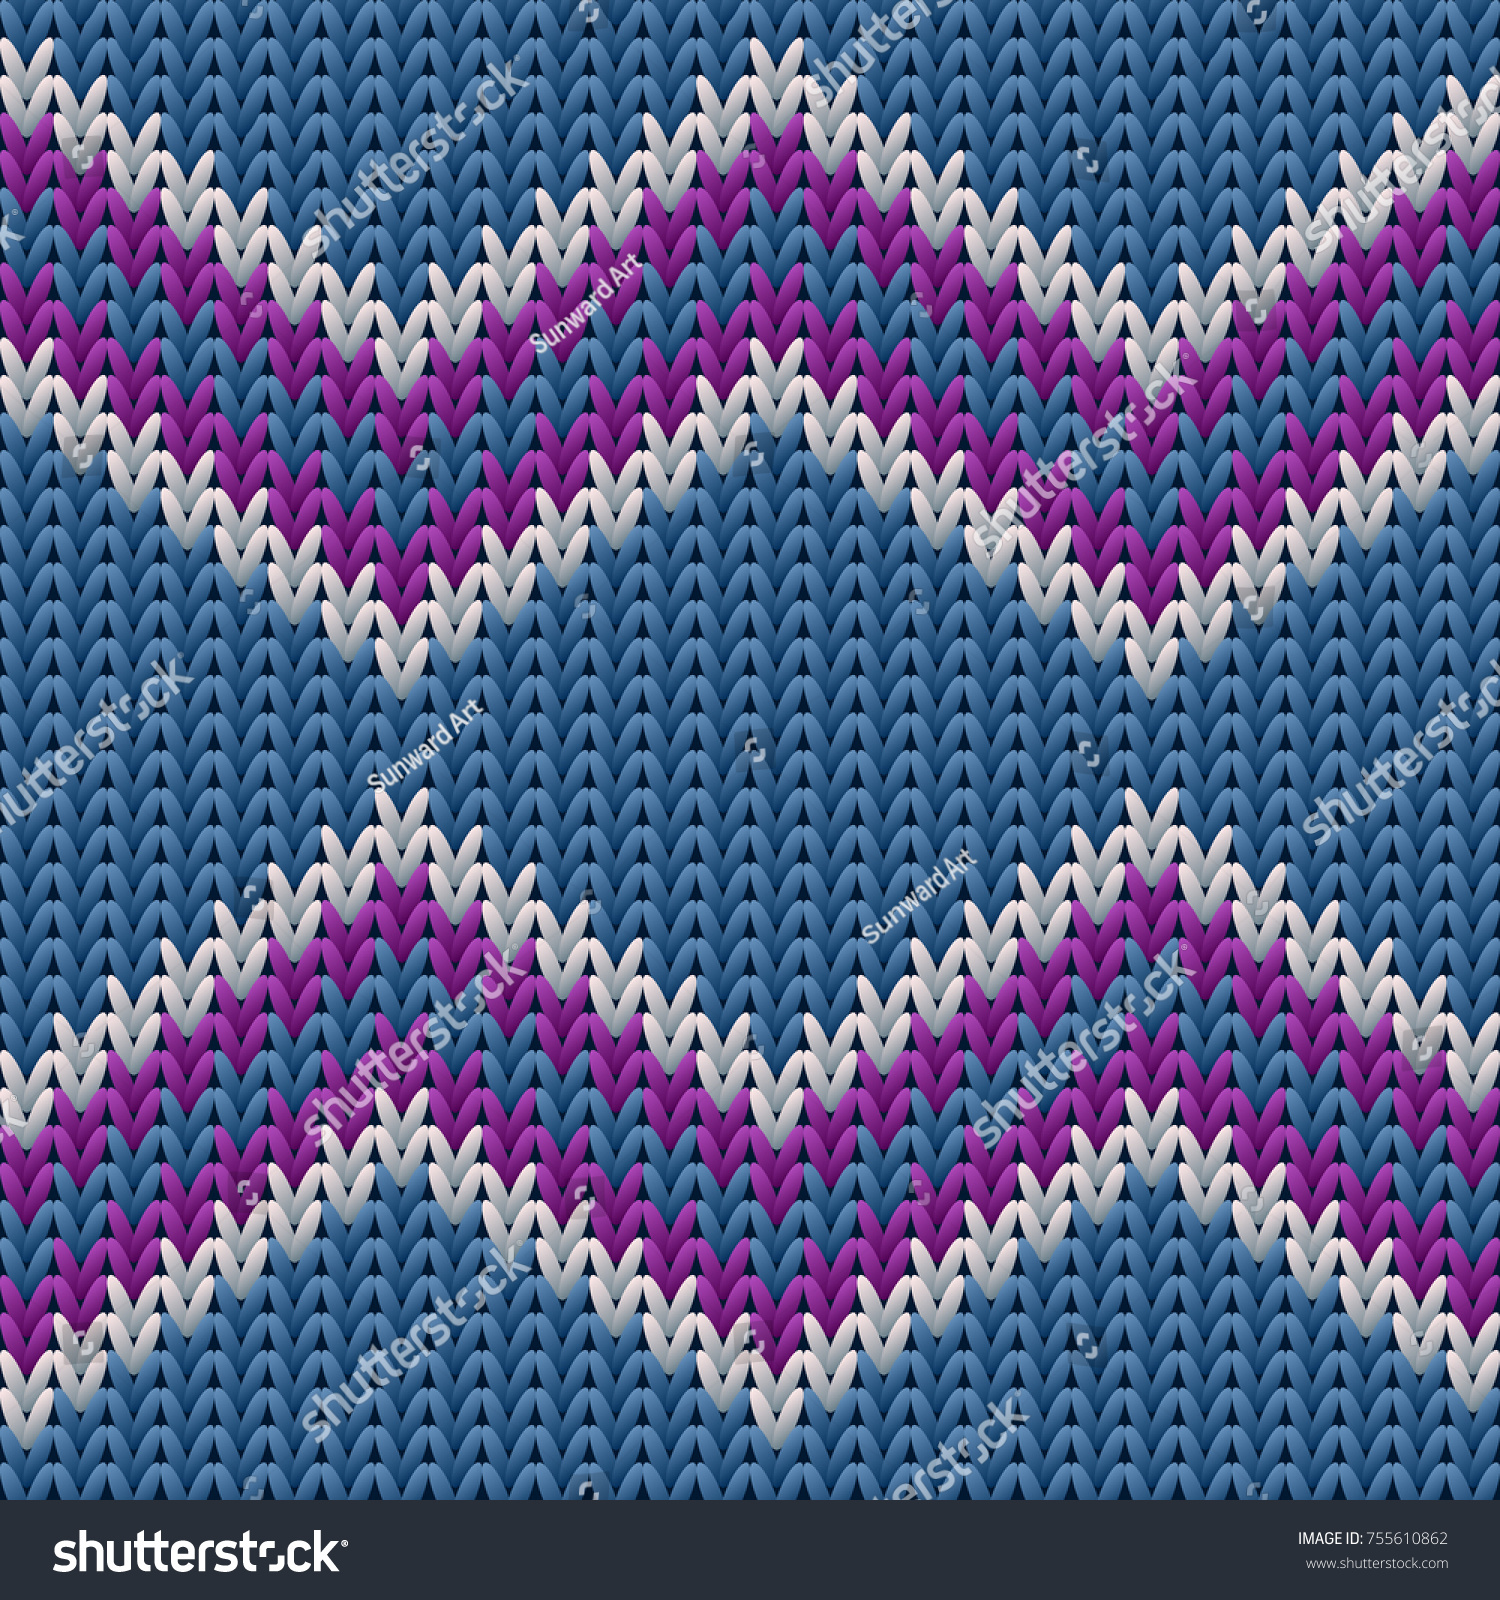 Knit Sweater With Zig Zag Pattern : Zigzag knitted background ugly sweater pattern stock